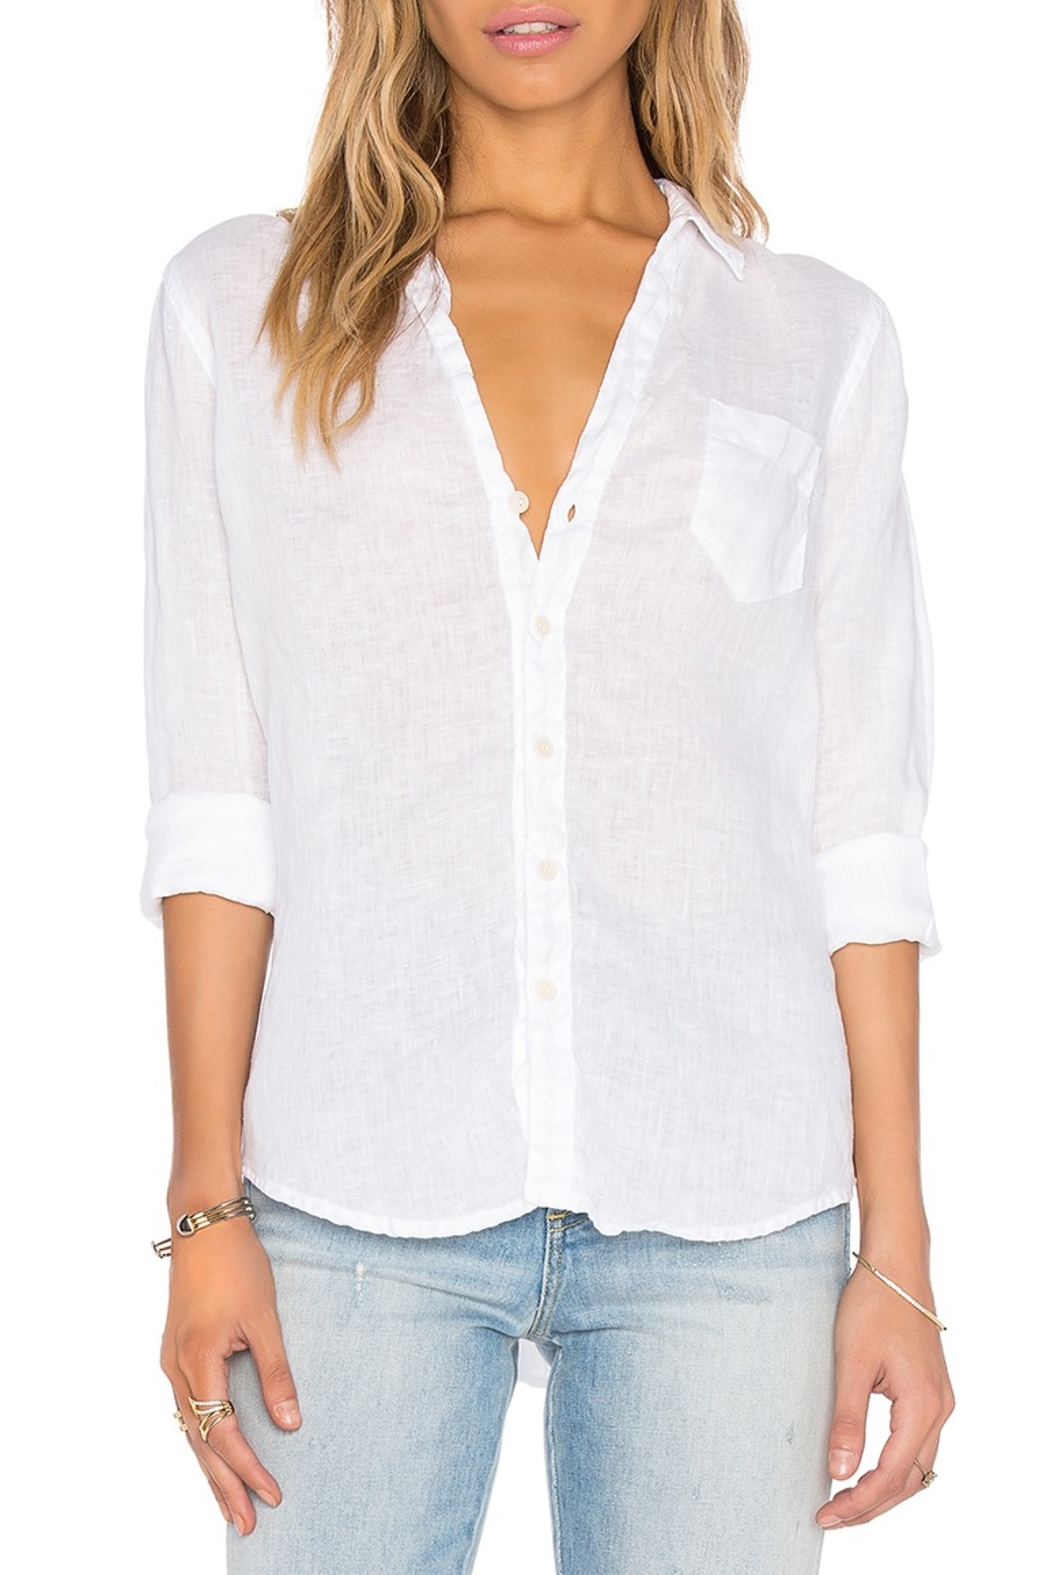 CP Shades Sloane Shirt White - Front Cropped Image